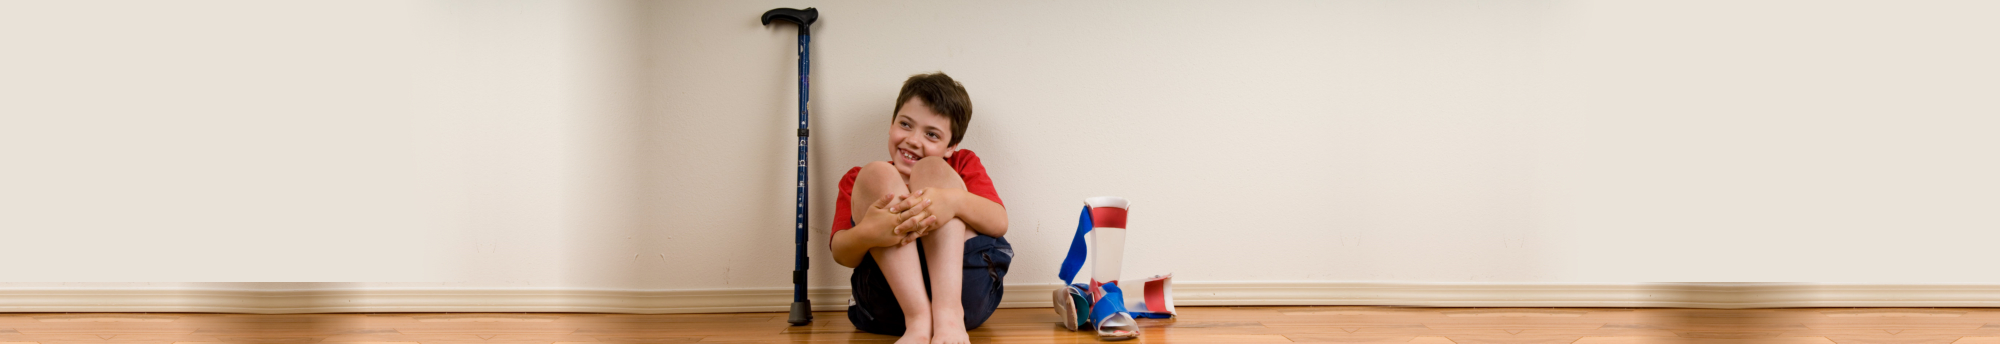 boy with disability smiling